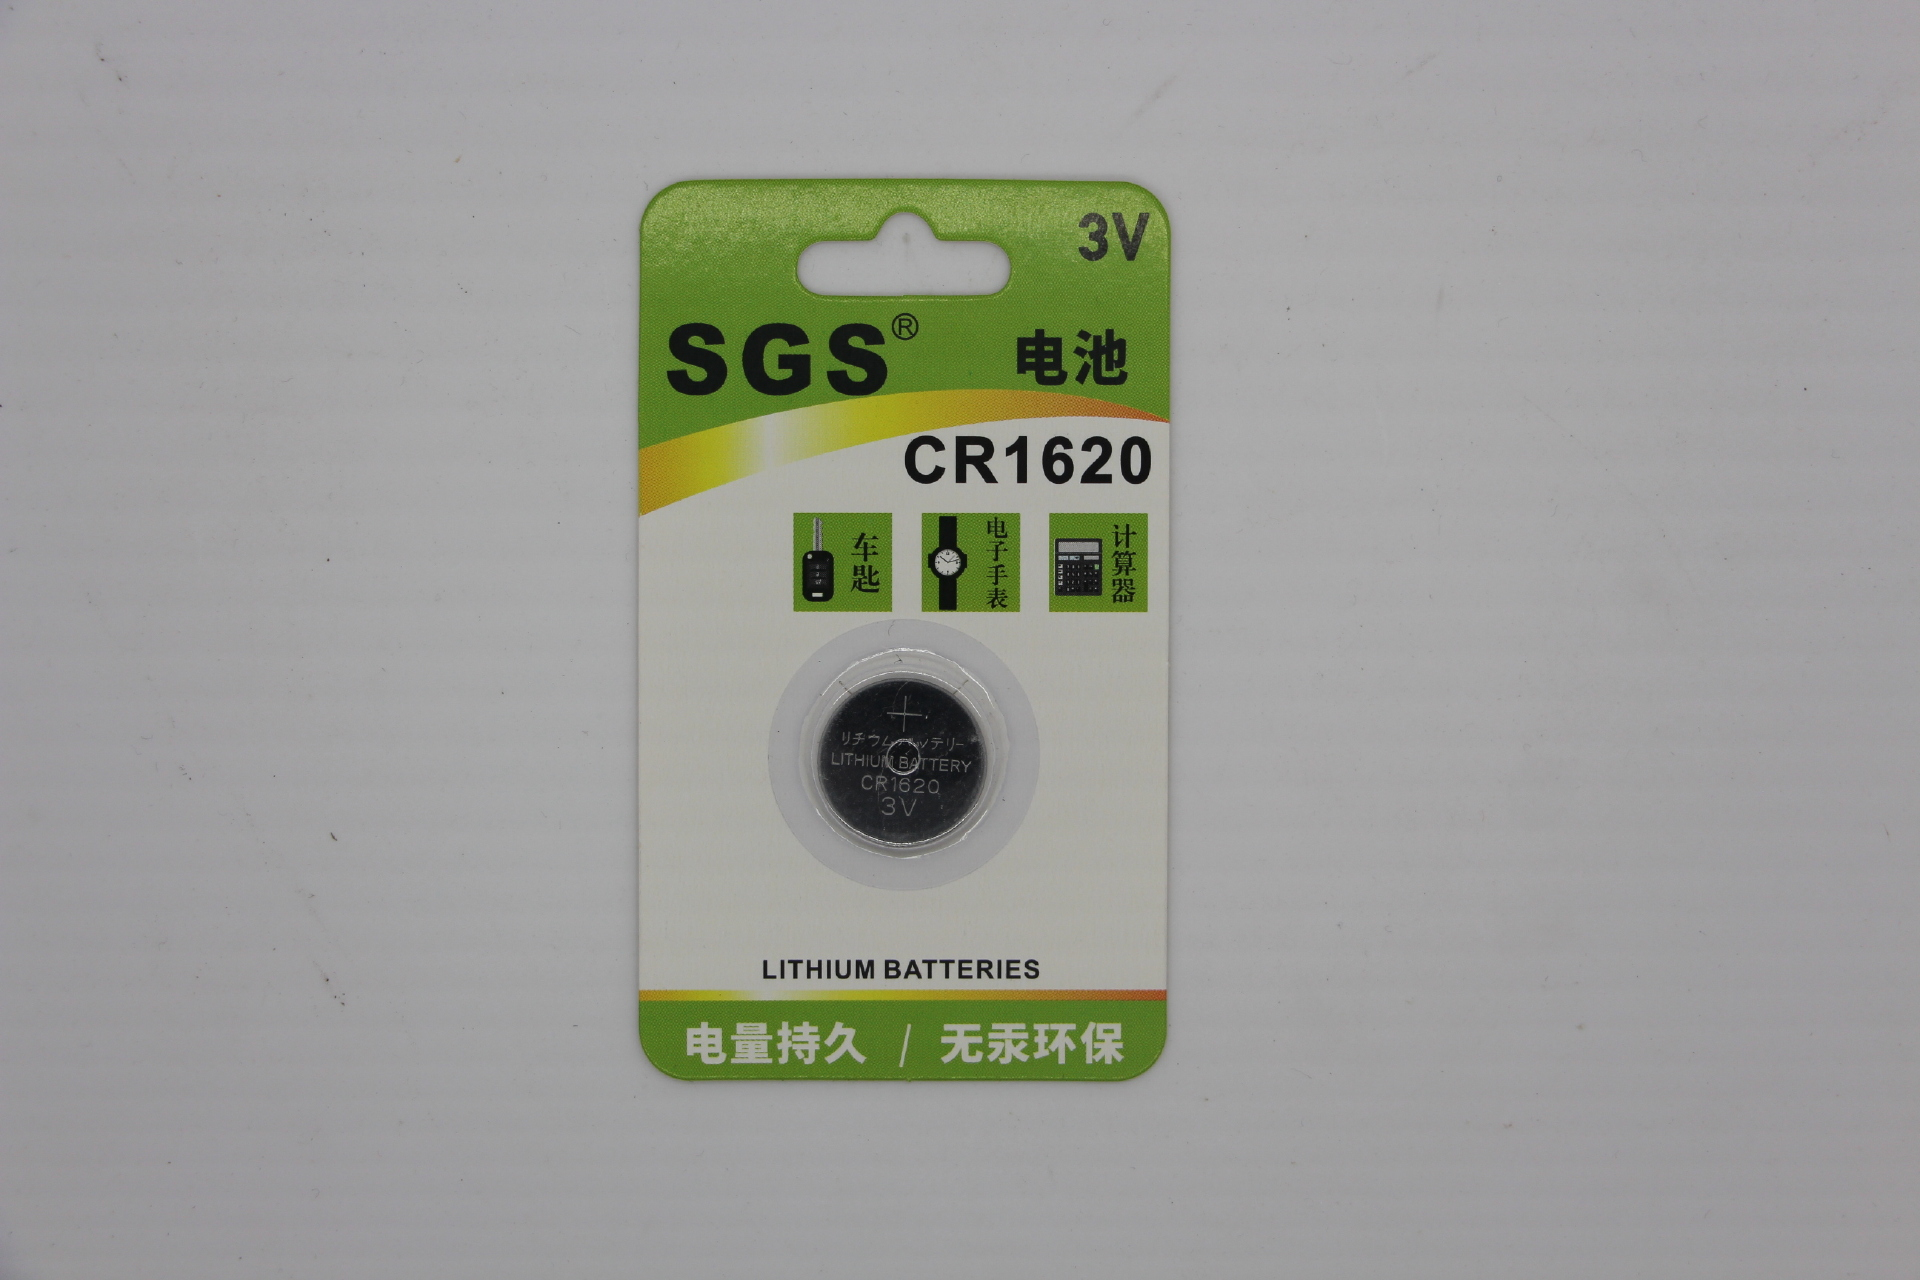 SGS lithium battery CR1620